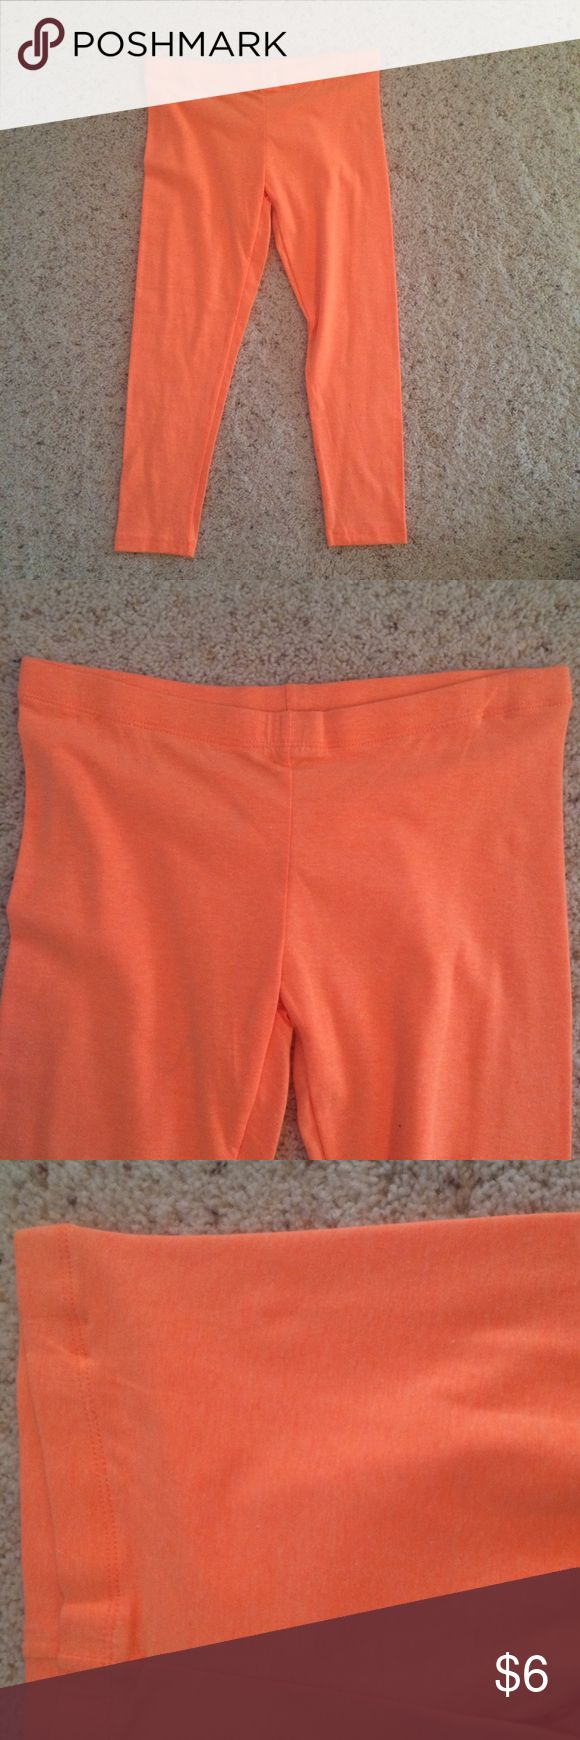 Neon Coral Capri Leggings Cotton Jersey Stretch LAST SIZE LEFT! Beautiful neon coral/tangerine Capri length leggings made out of a cotton spandex blend. Super comfy and versatile. Warm in the winter but breathable in warm weather as well. These hit at mid calf. Elastic waistband. Carried in my boutique. Sizing runs a little small. Large - 8/10/12 Medium - 4/6/8 Small - 0/2/4 Zenana Outfitters Pants Leggings